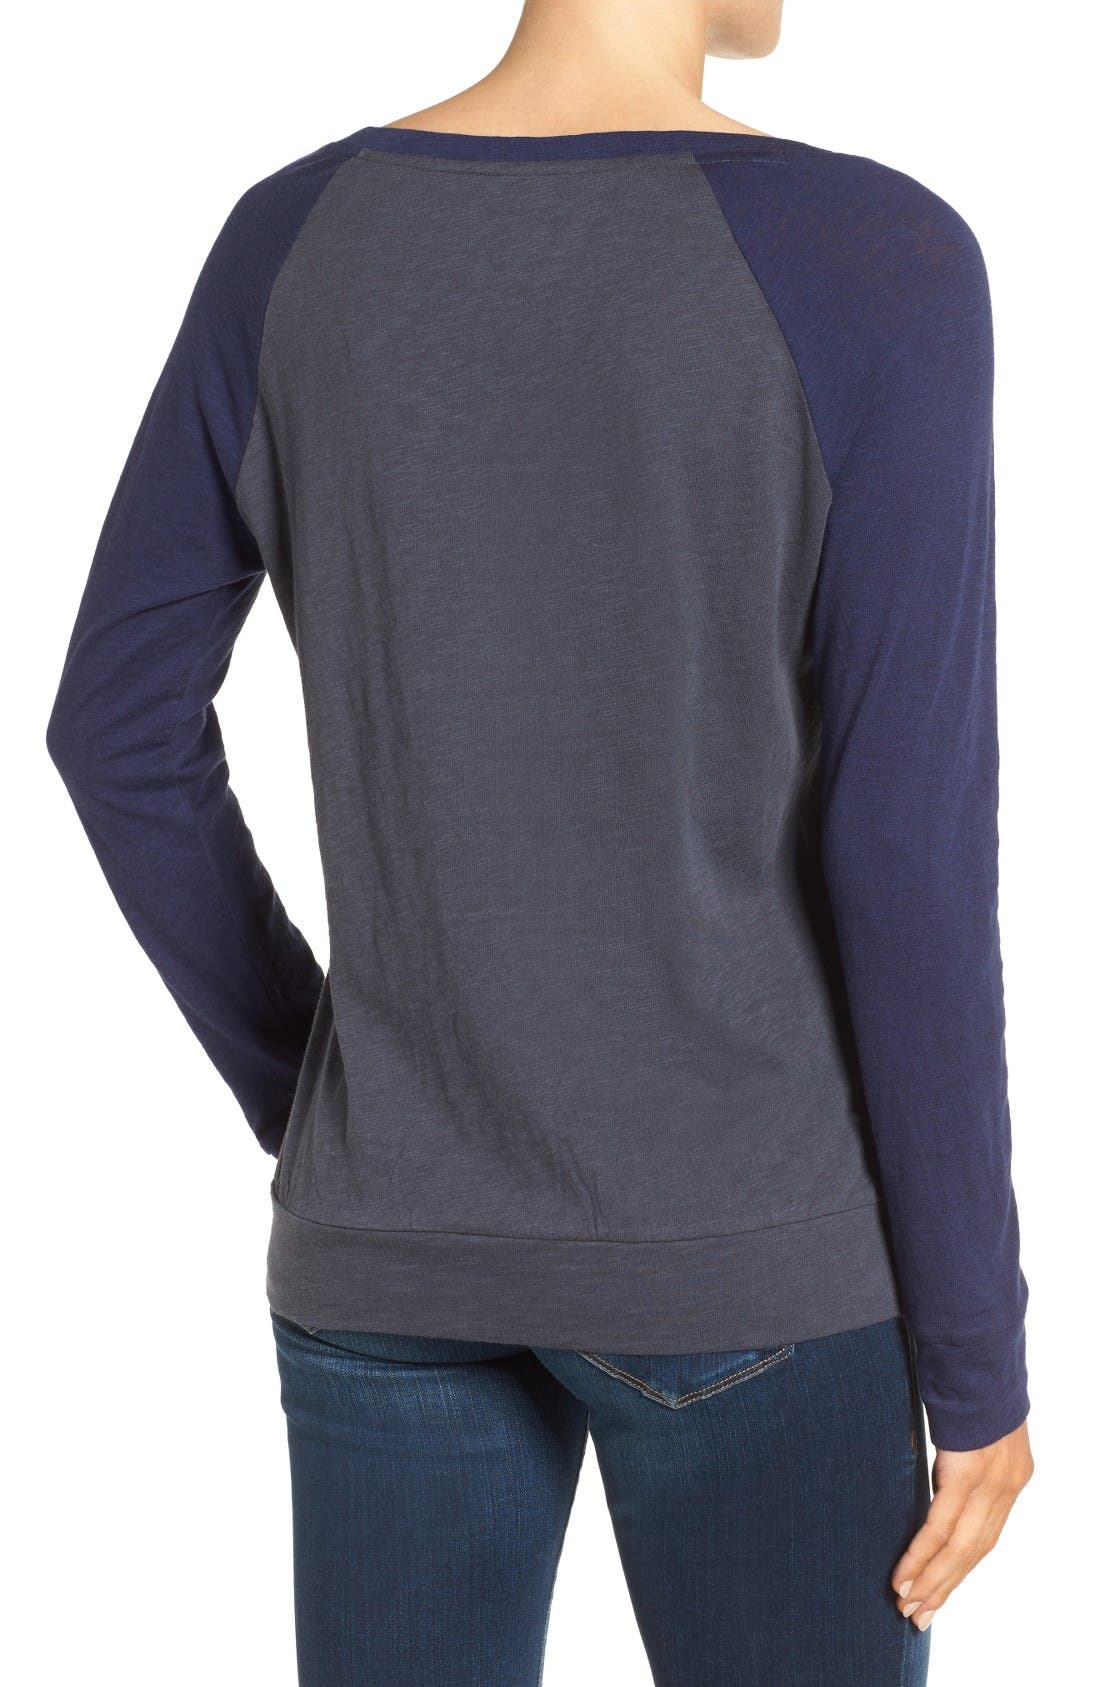 Lightweight Colorblock Cotton Tee,                             Alternate thumbnail 2, color,                             Grey- Navy Colorblock